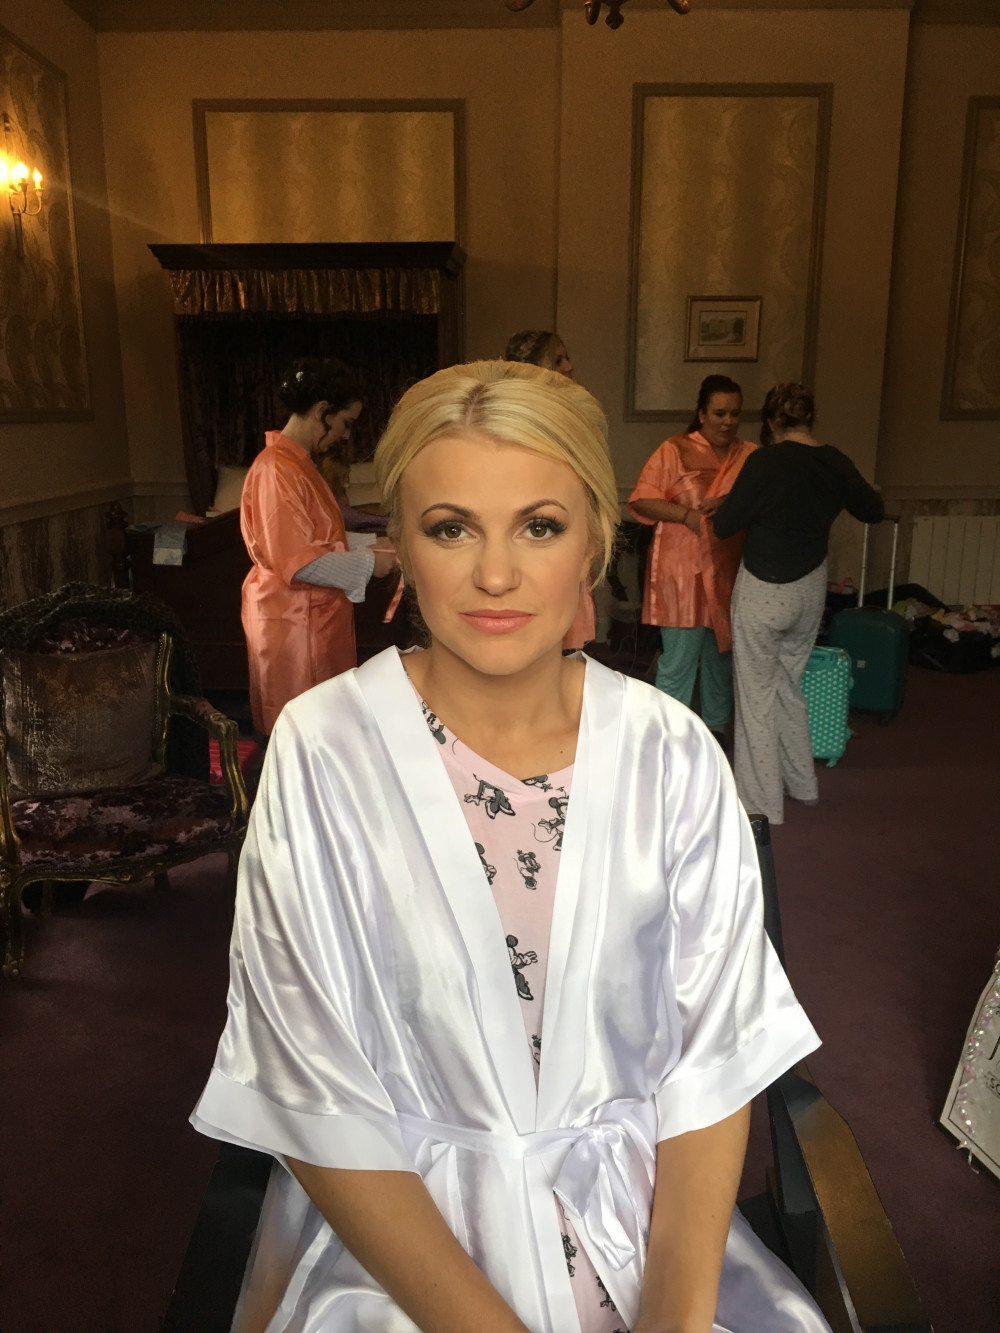 Gorgeous Micki at Clearwell castle - Make Me Bridal Artist: Makeup by Natasha Louise .